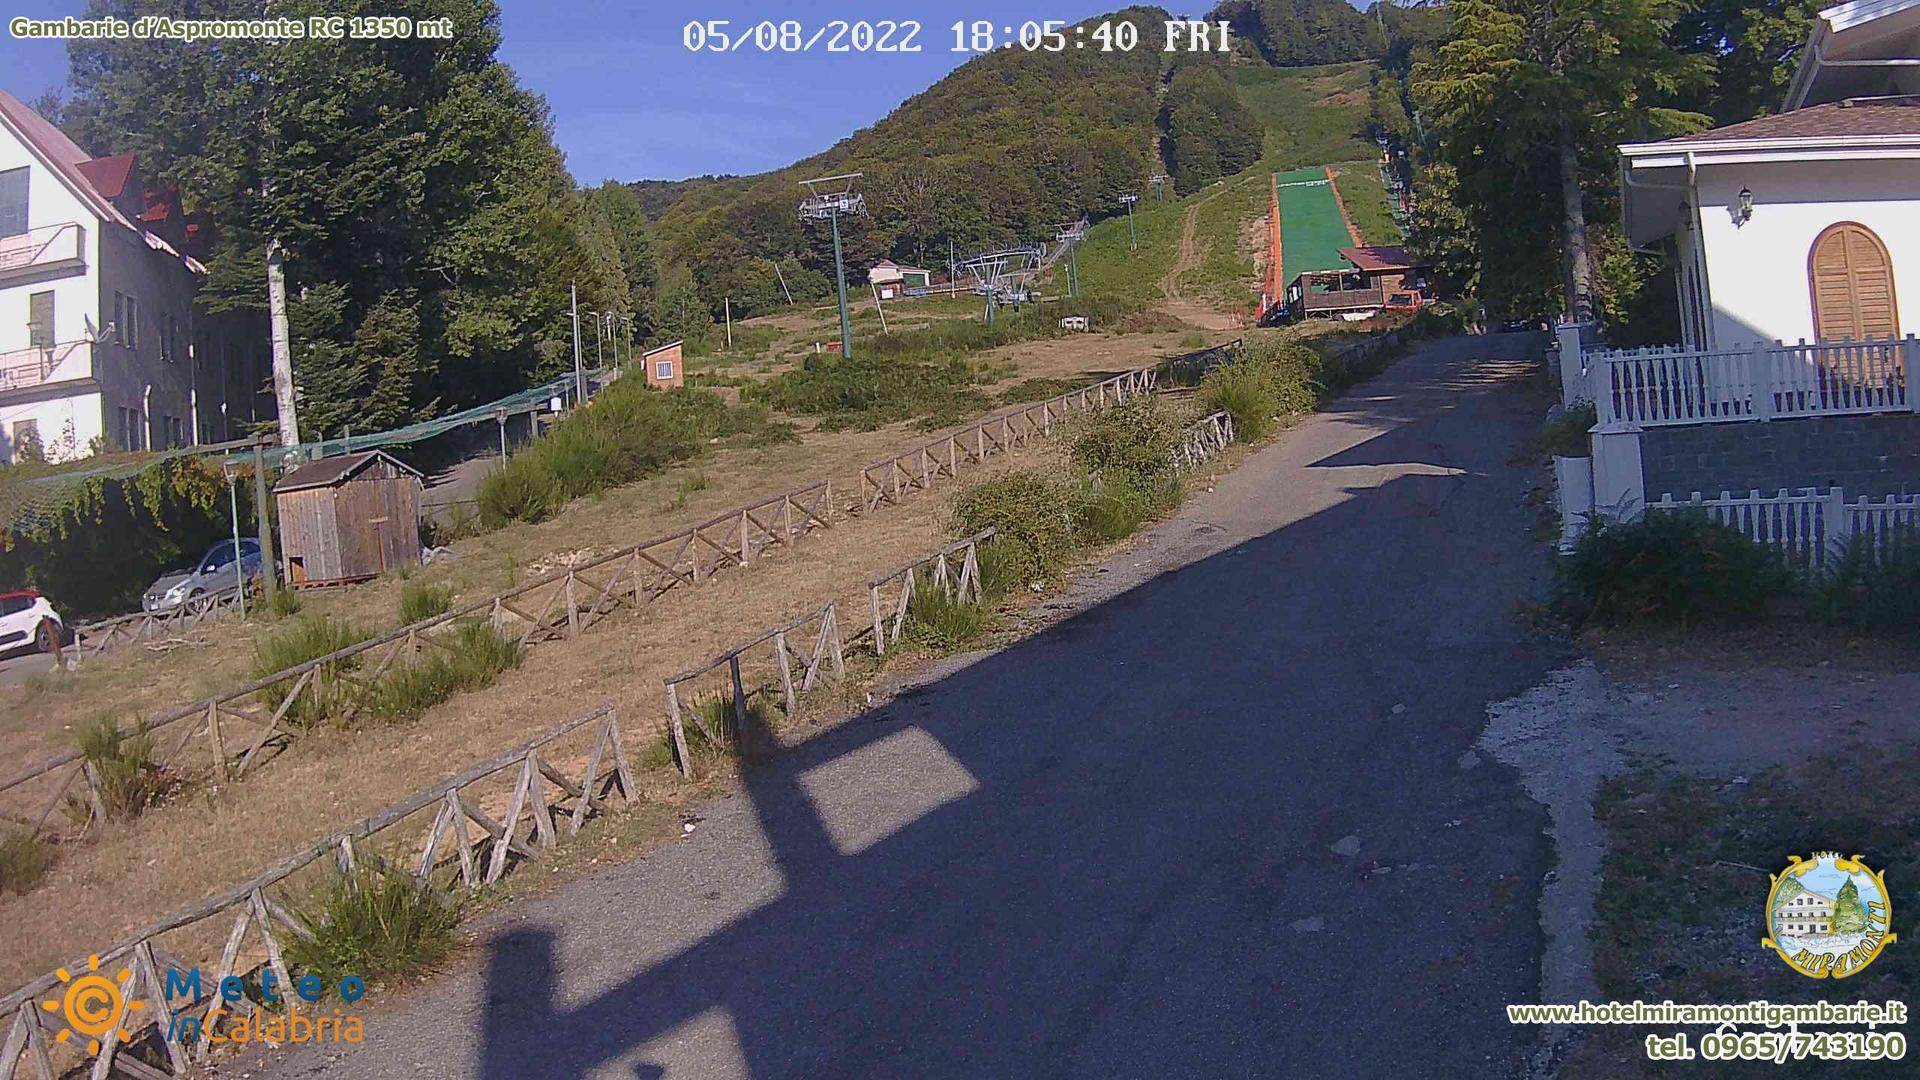 Webcam Gambarie Aspromonte